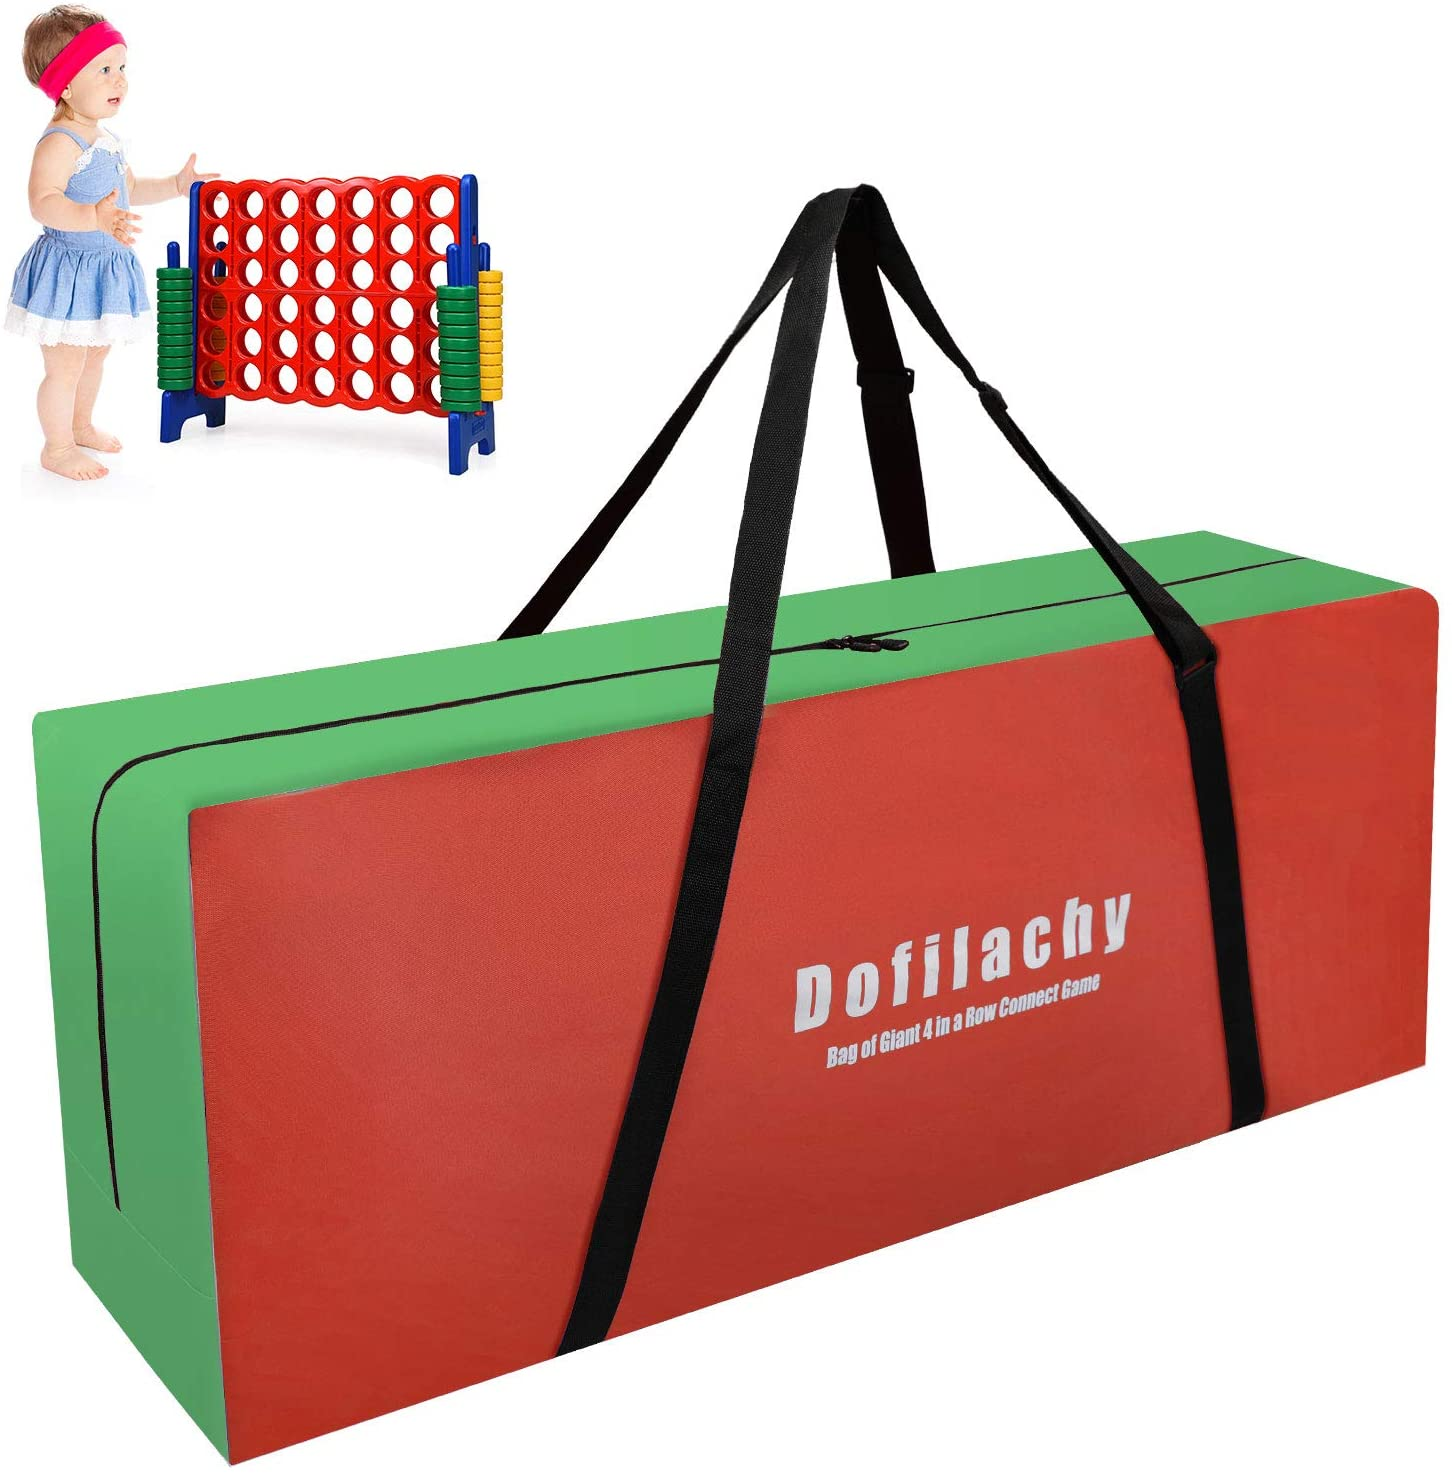 Dofilachy Giant 4 in A Row Carry and Storage Bag-Life Size Outdoor Games Carry and Storage Bag for Giant Connect 4 in A Row Game-Easily Transport Connect 4 Game to Anywhere(Green+Red)